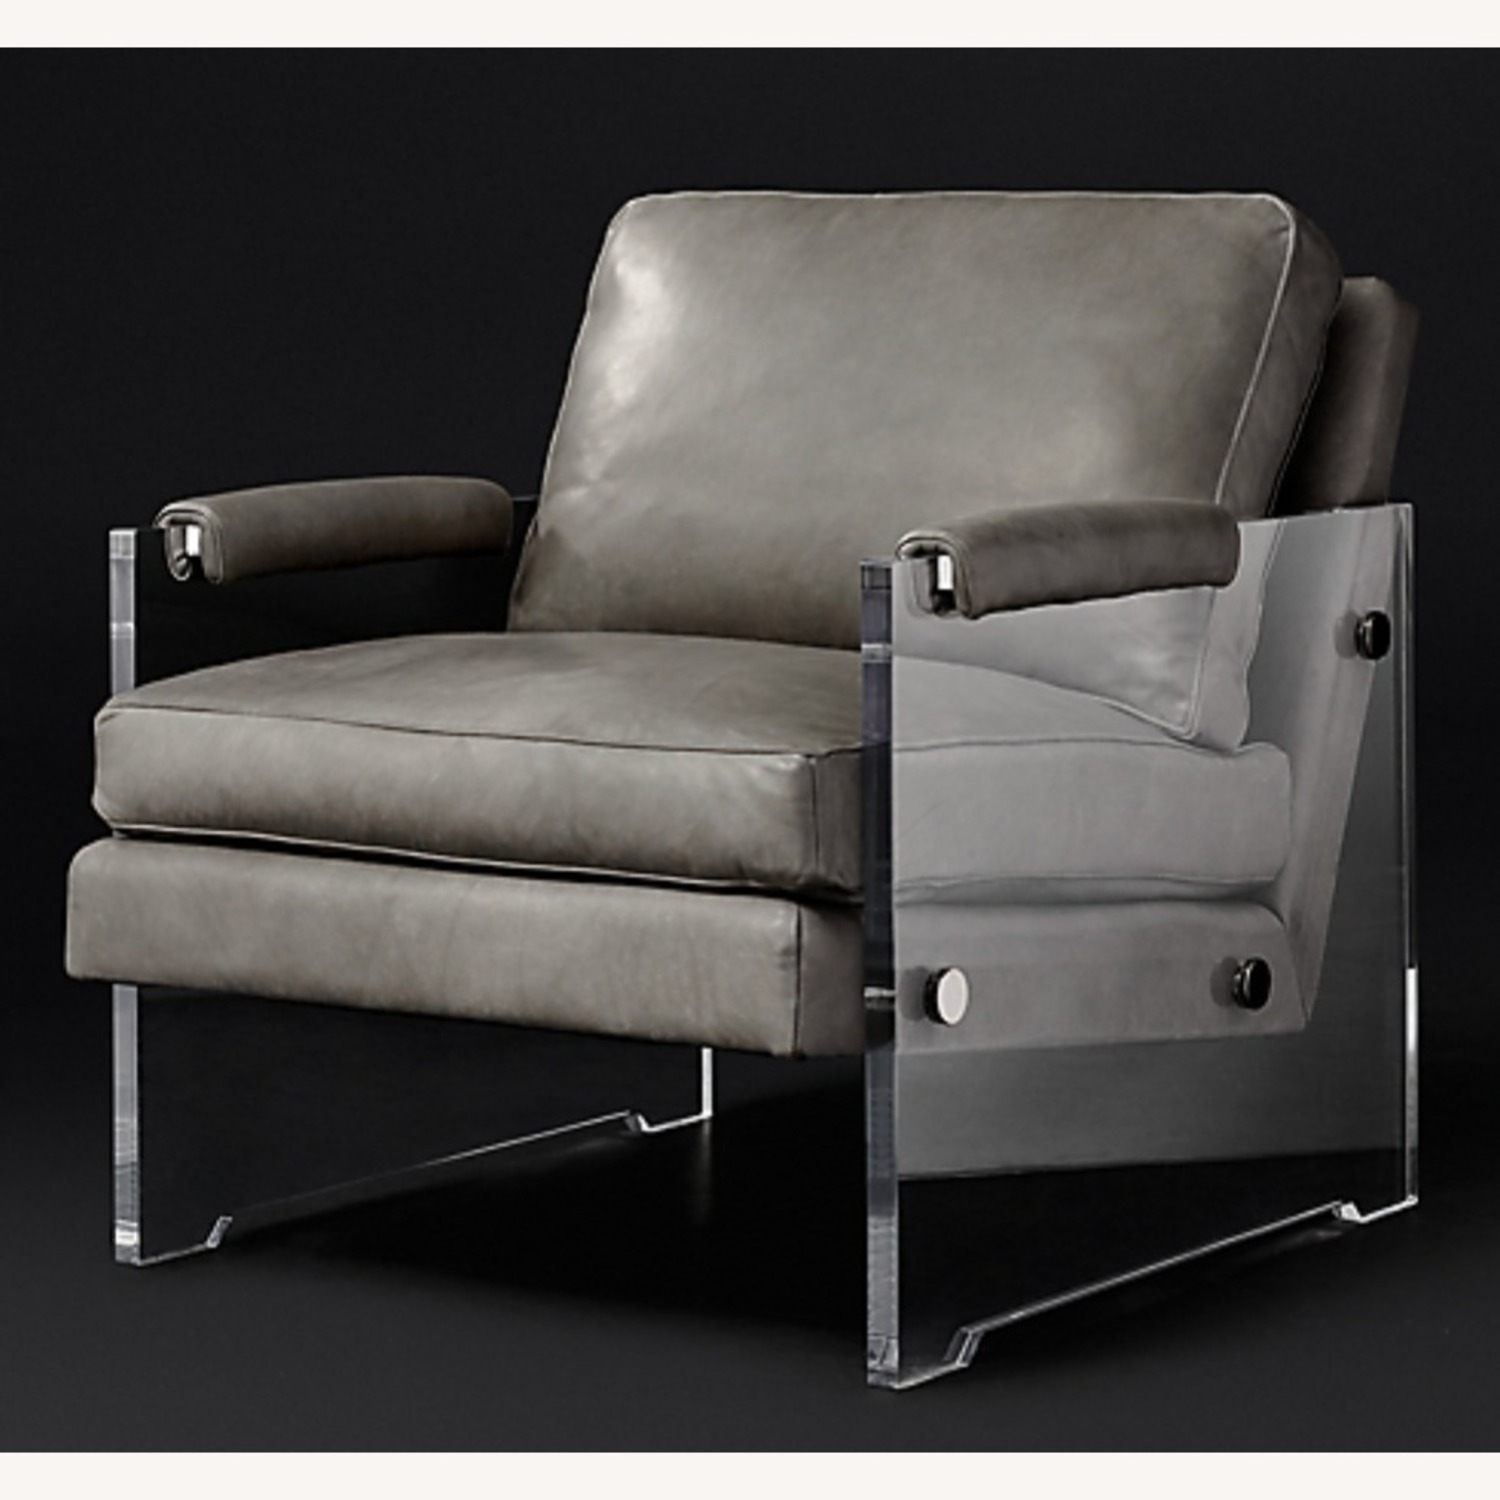 Restoration Hardware Leather Luca Chair - image-0